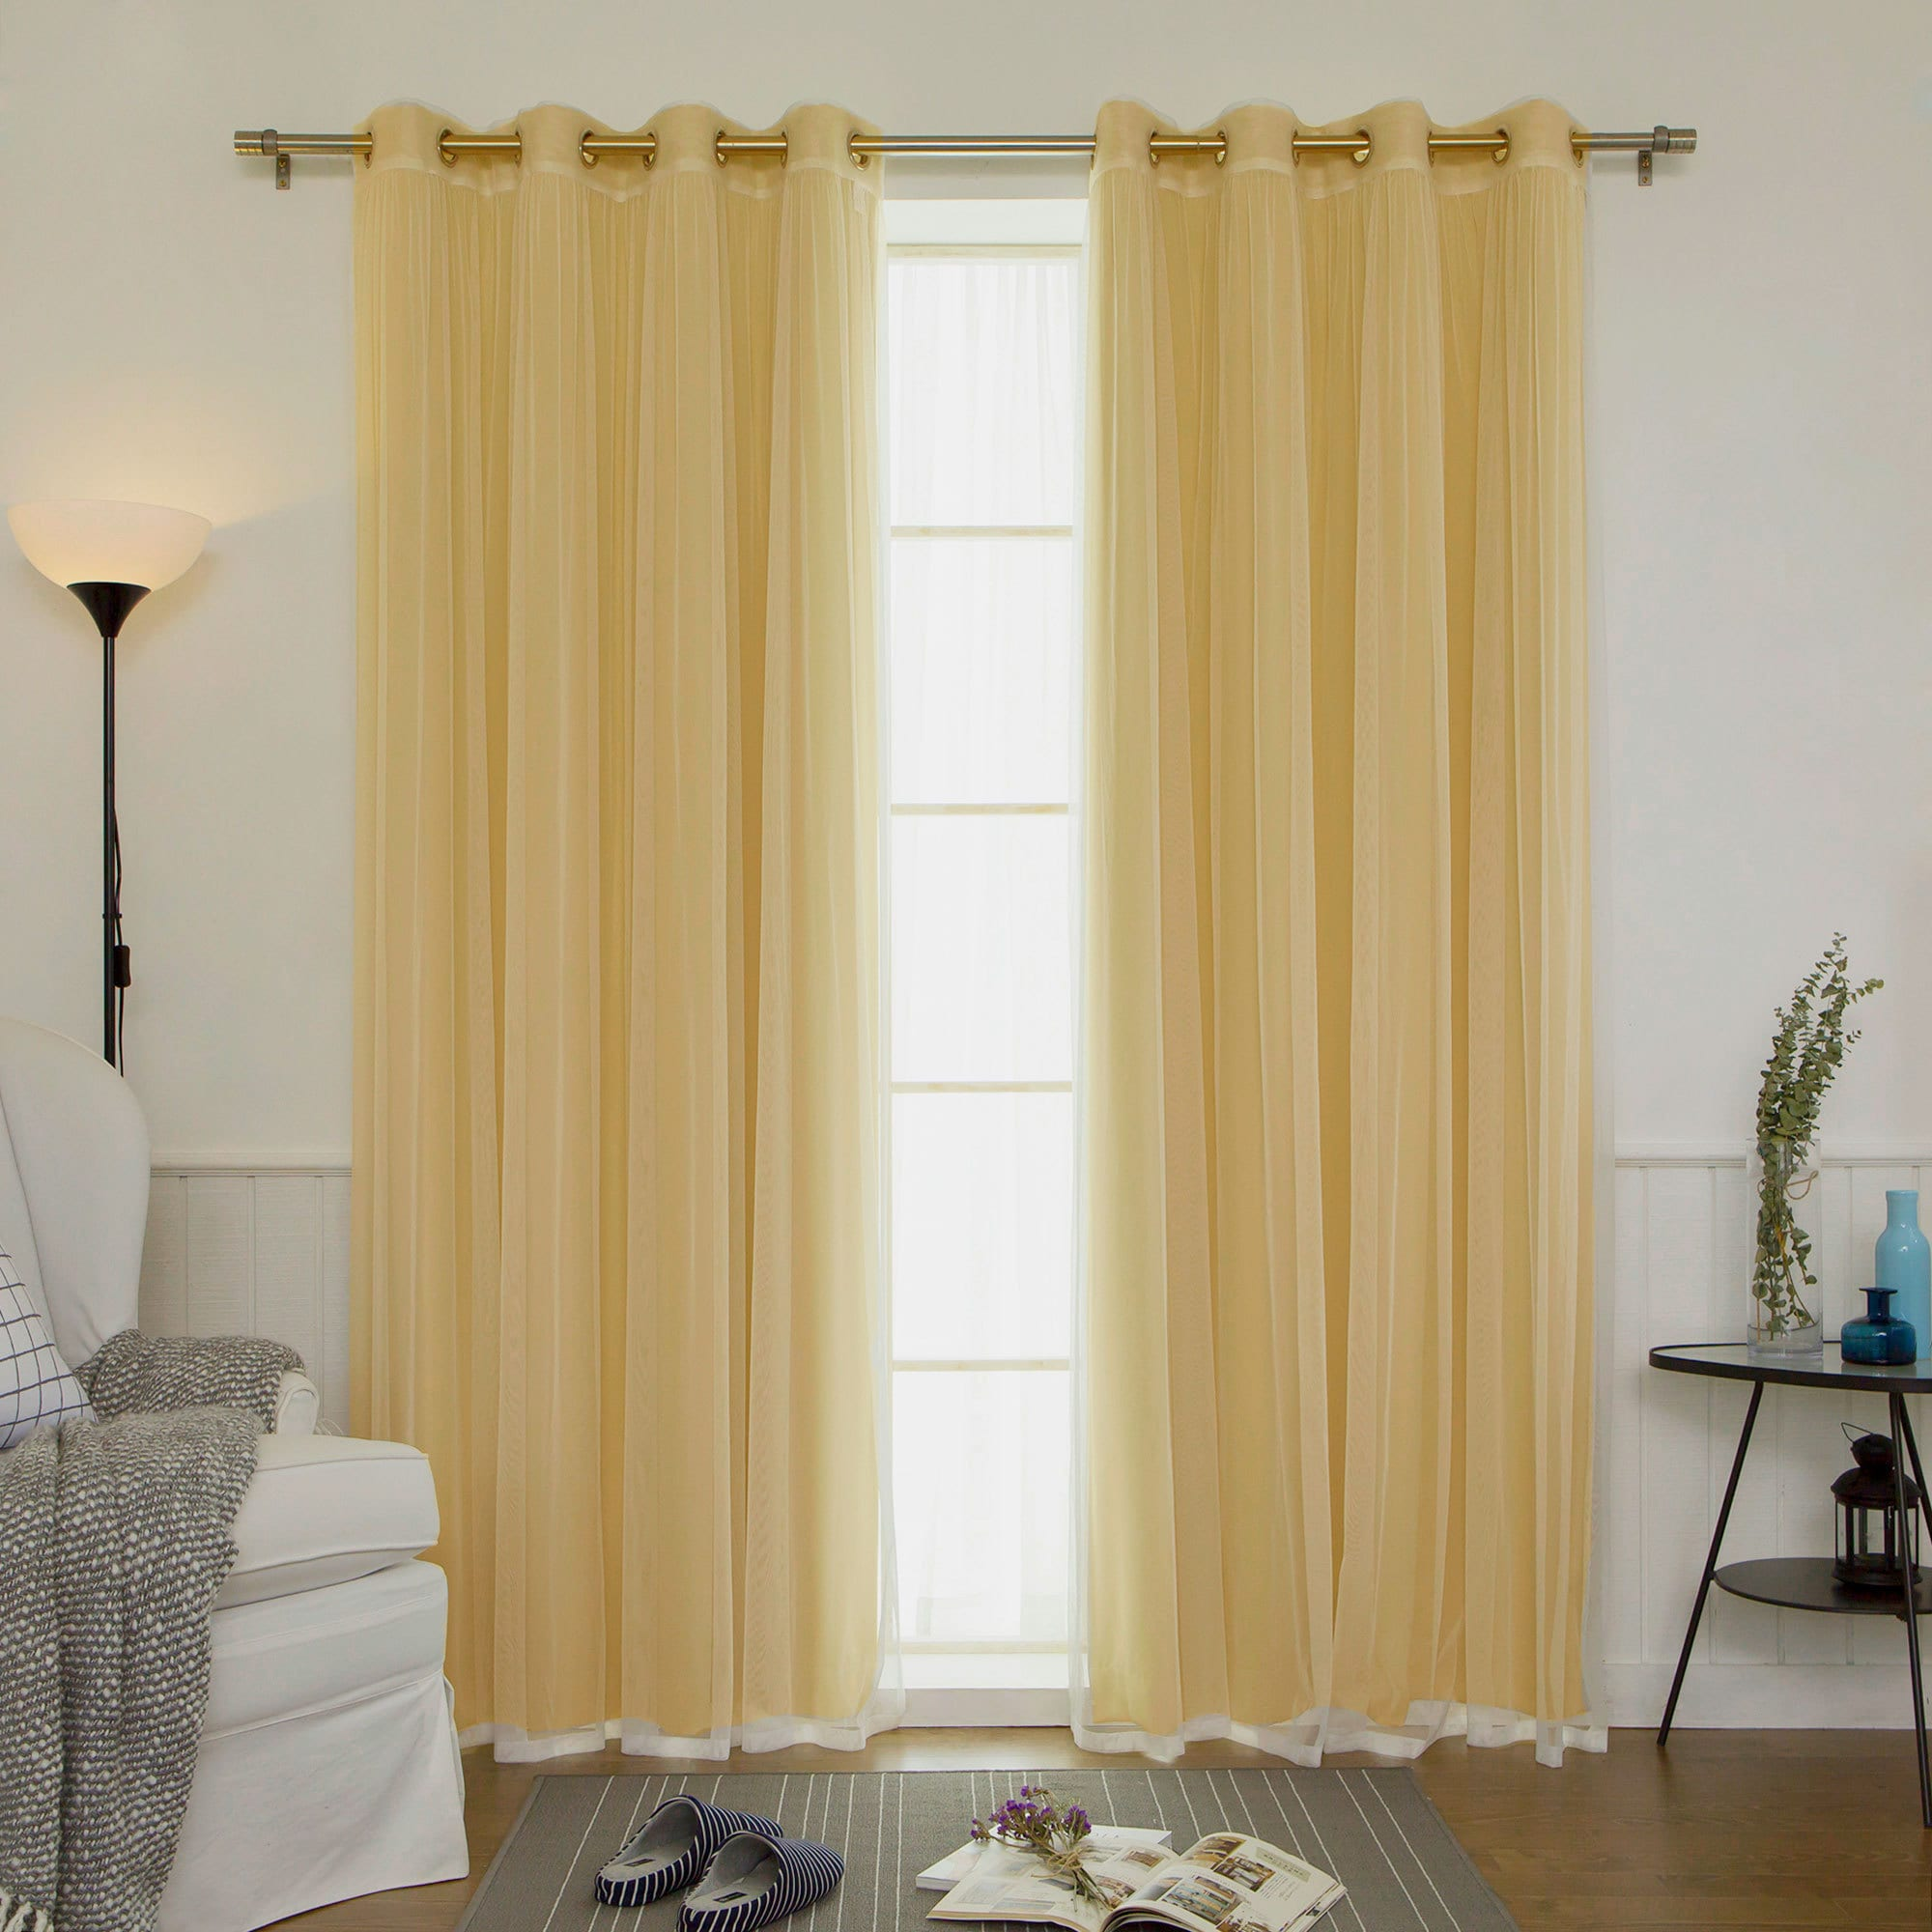 Aurora Home Mix & Match Blackout and Sheer Tulle Lace 4-piece Curtain Panel  Pair - Free Shipping Today - Overstock.com - 18722886